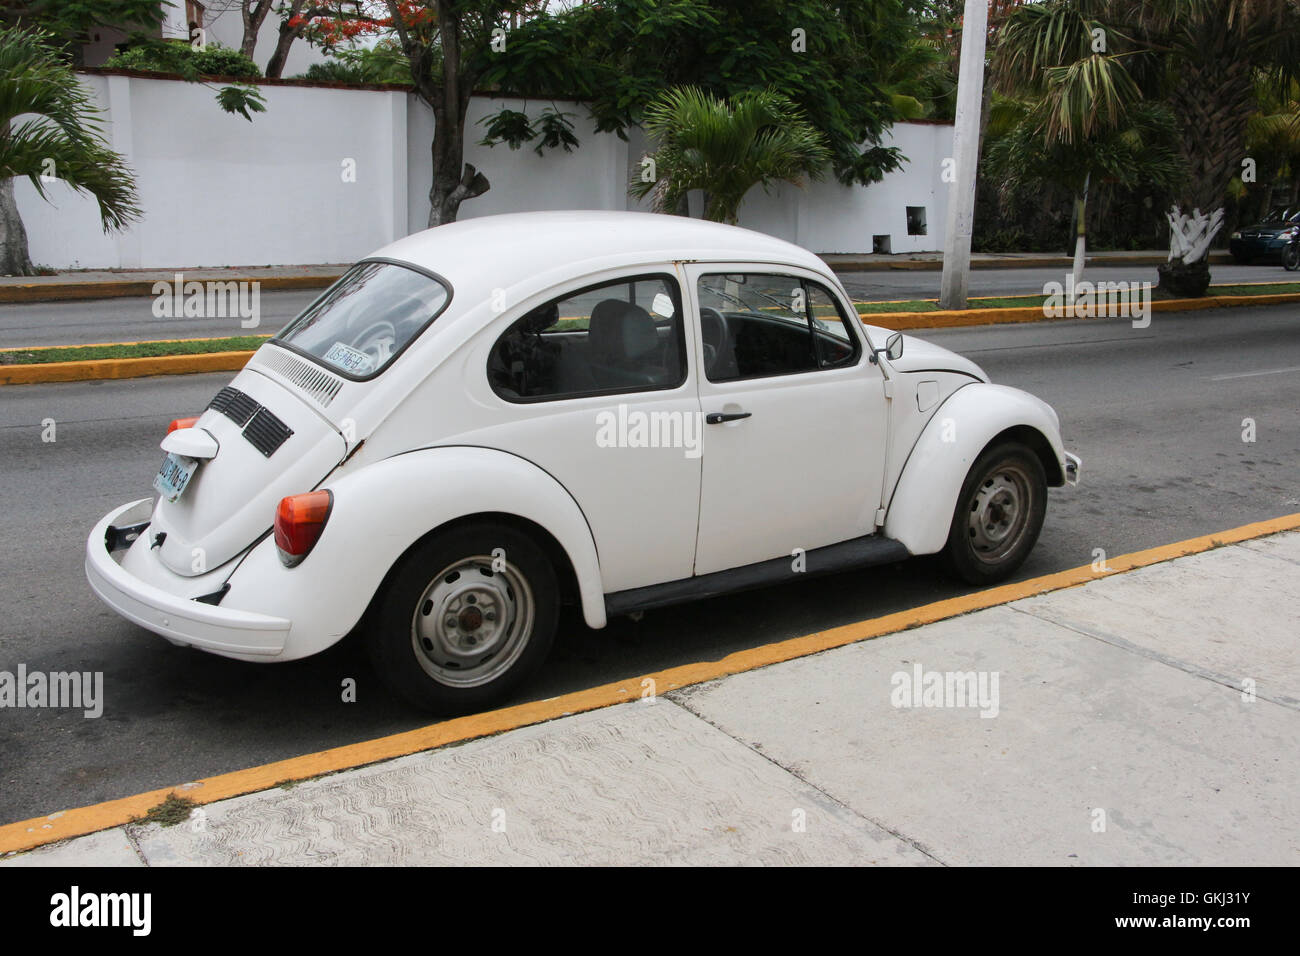 Punch Buggy Car >> Volkswagen Mexico Punch Buggies Punch Buggy Stock Photo 115338215